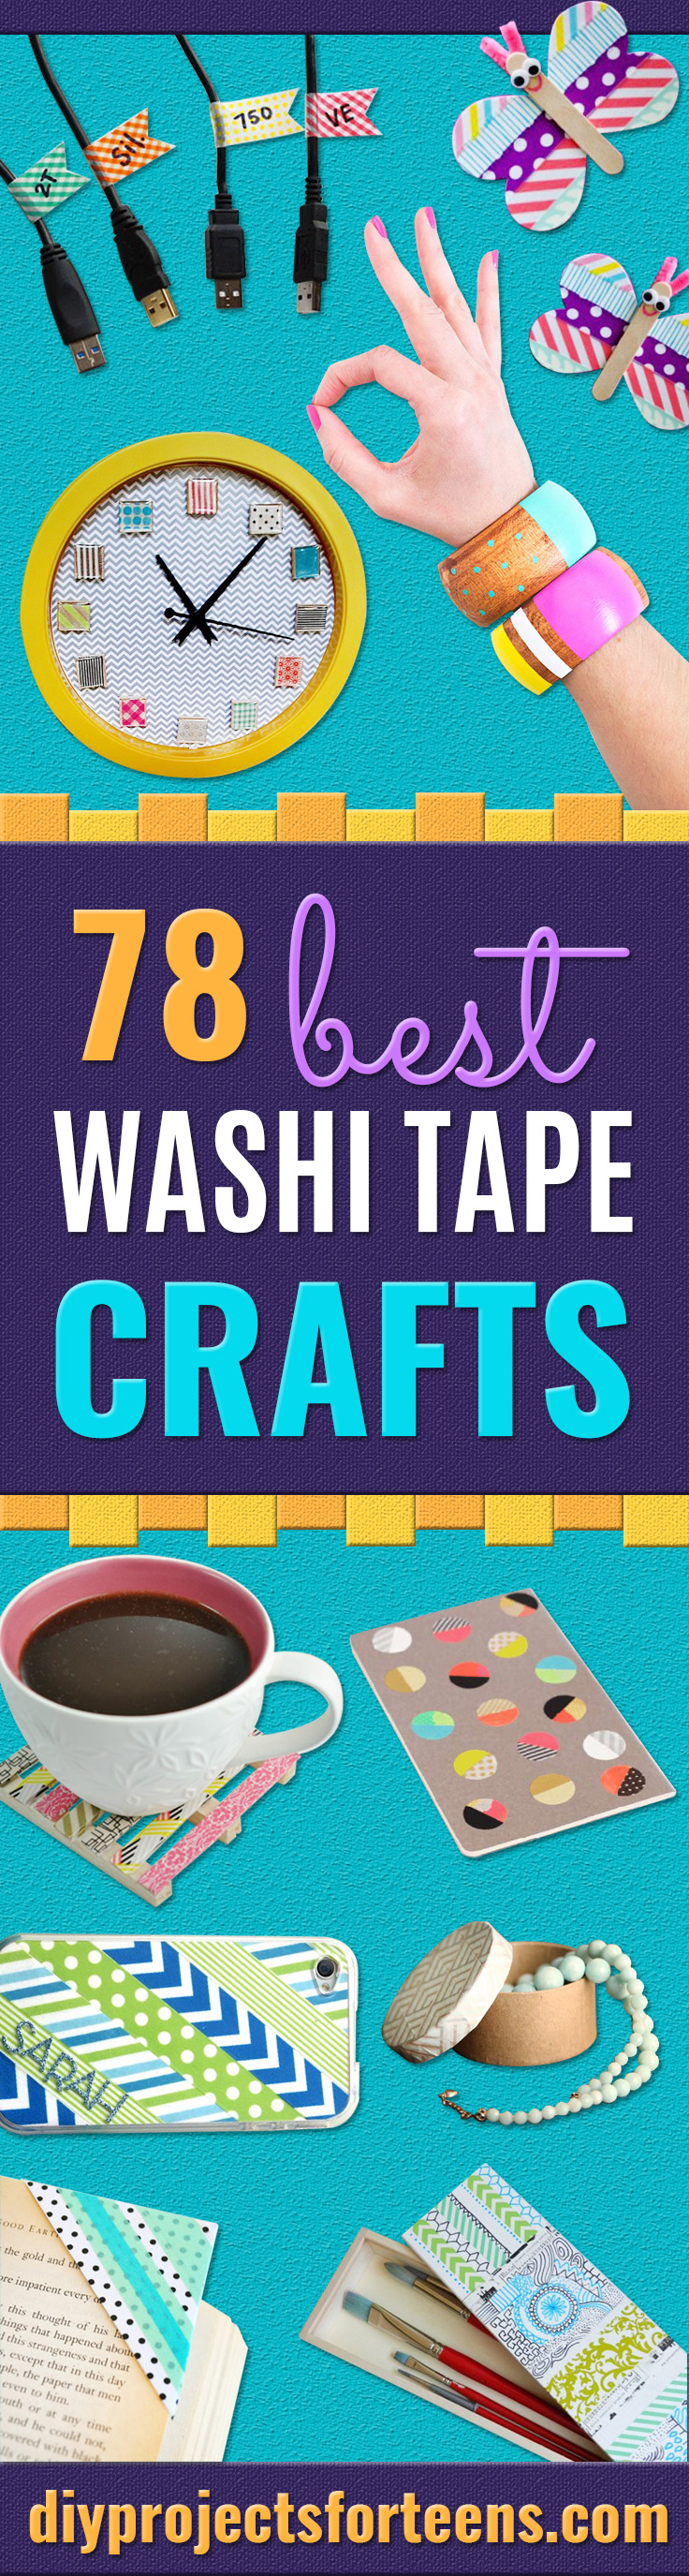 Washi Tape Crafts - Wall Art, Frames, Cards, Pencils, Room Decor and DIY Gifts, Back To School Supplies - Creative, Fun Craft Ideas for Teens, Tweens and Teenagers - Step by Step Tutorials and Instructions #washitape #crafts #cheapcrafts #teencrafts